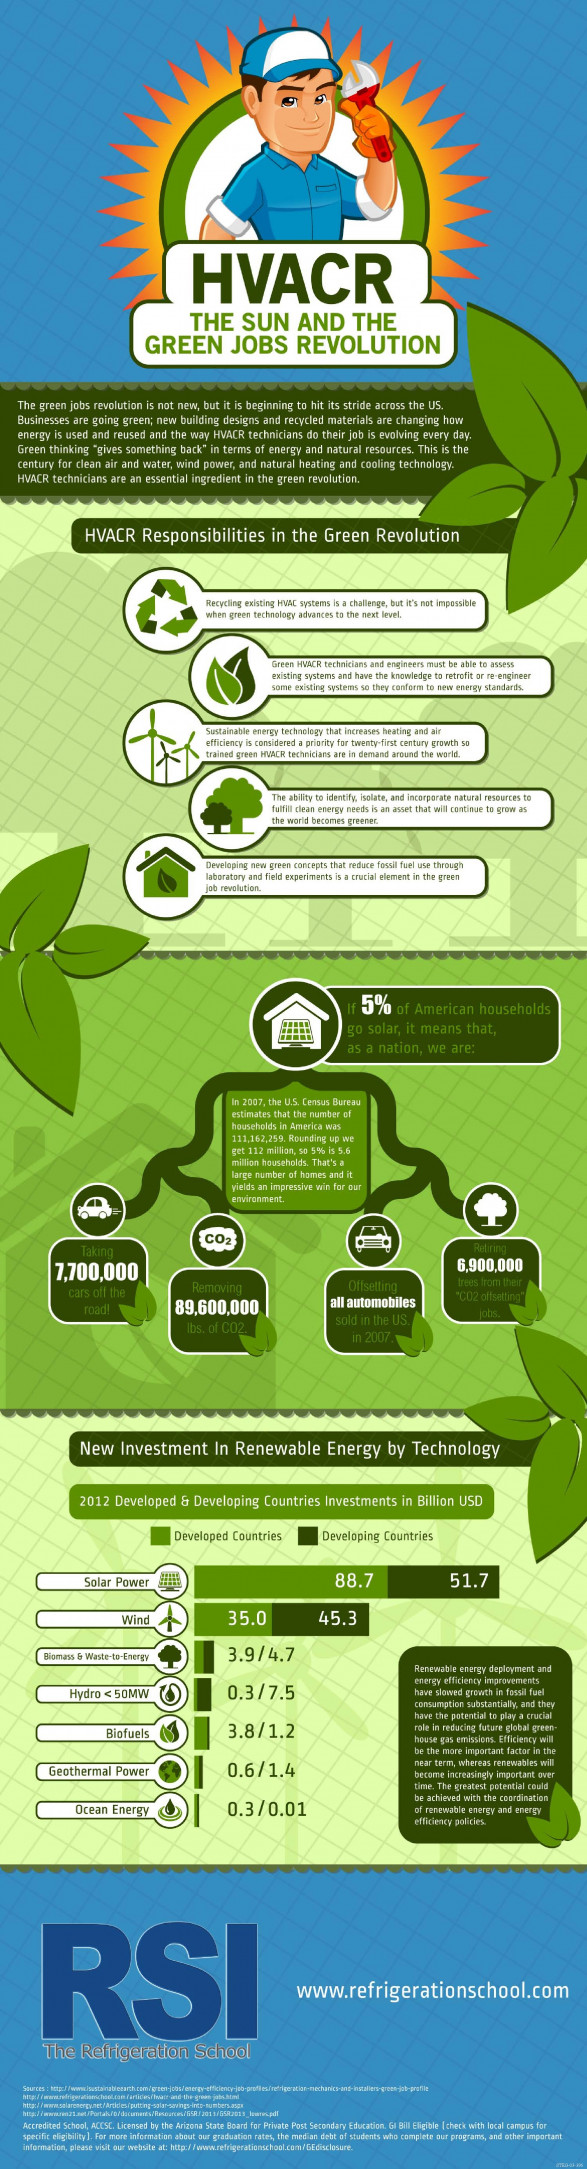 Infographic: HVACR, the Sun and the Green Jobs Revolution